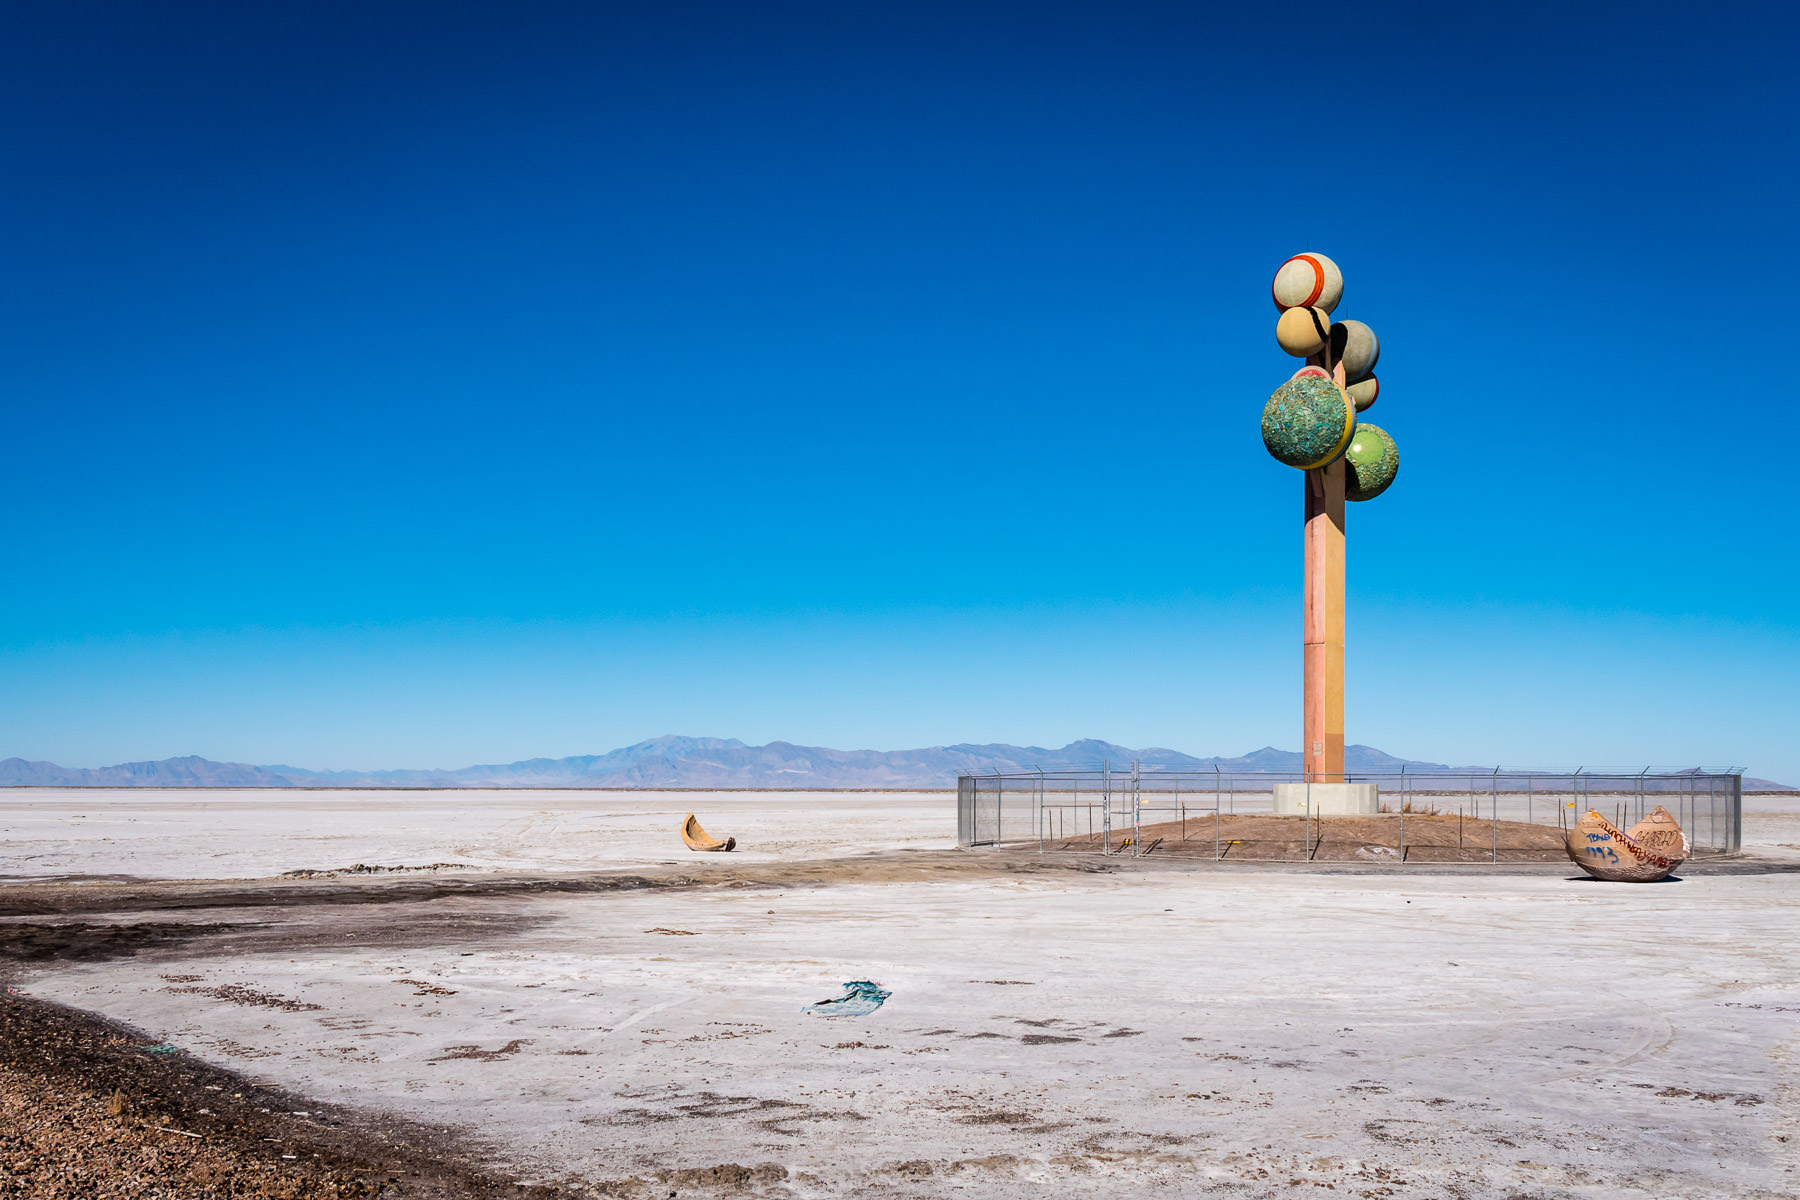 Swedish sculptor Karl Momen's 87-foot-tall Metaphor: The Tree of Utah rises over the desolate emptiness of Utah's Bonneville Salt Flats.